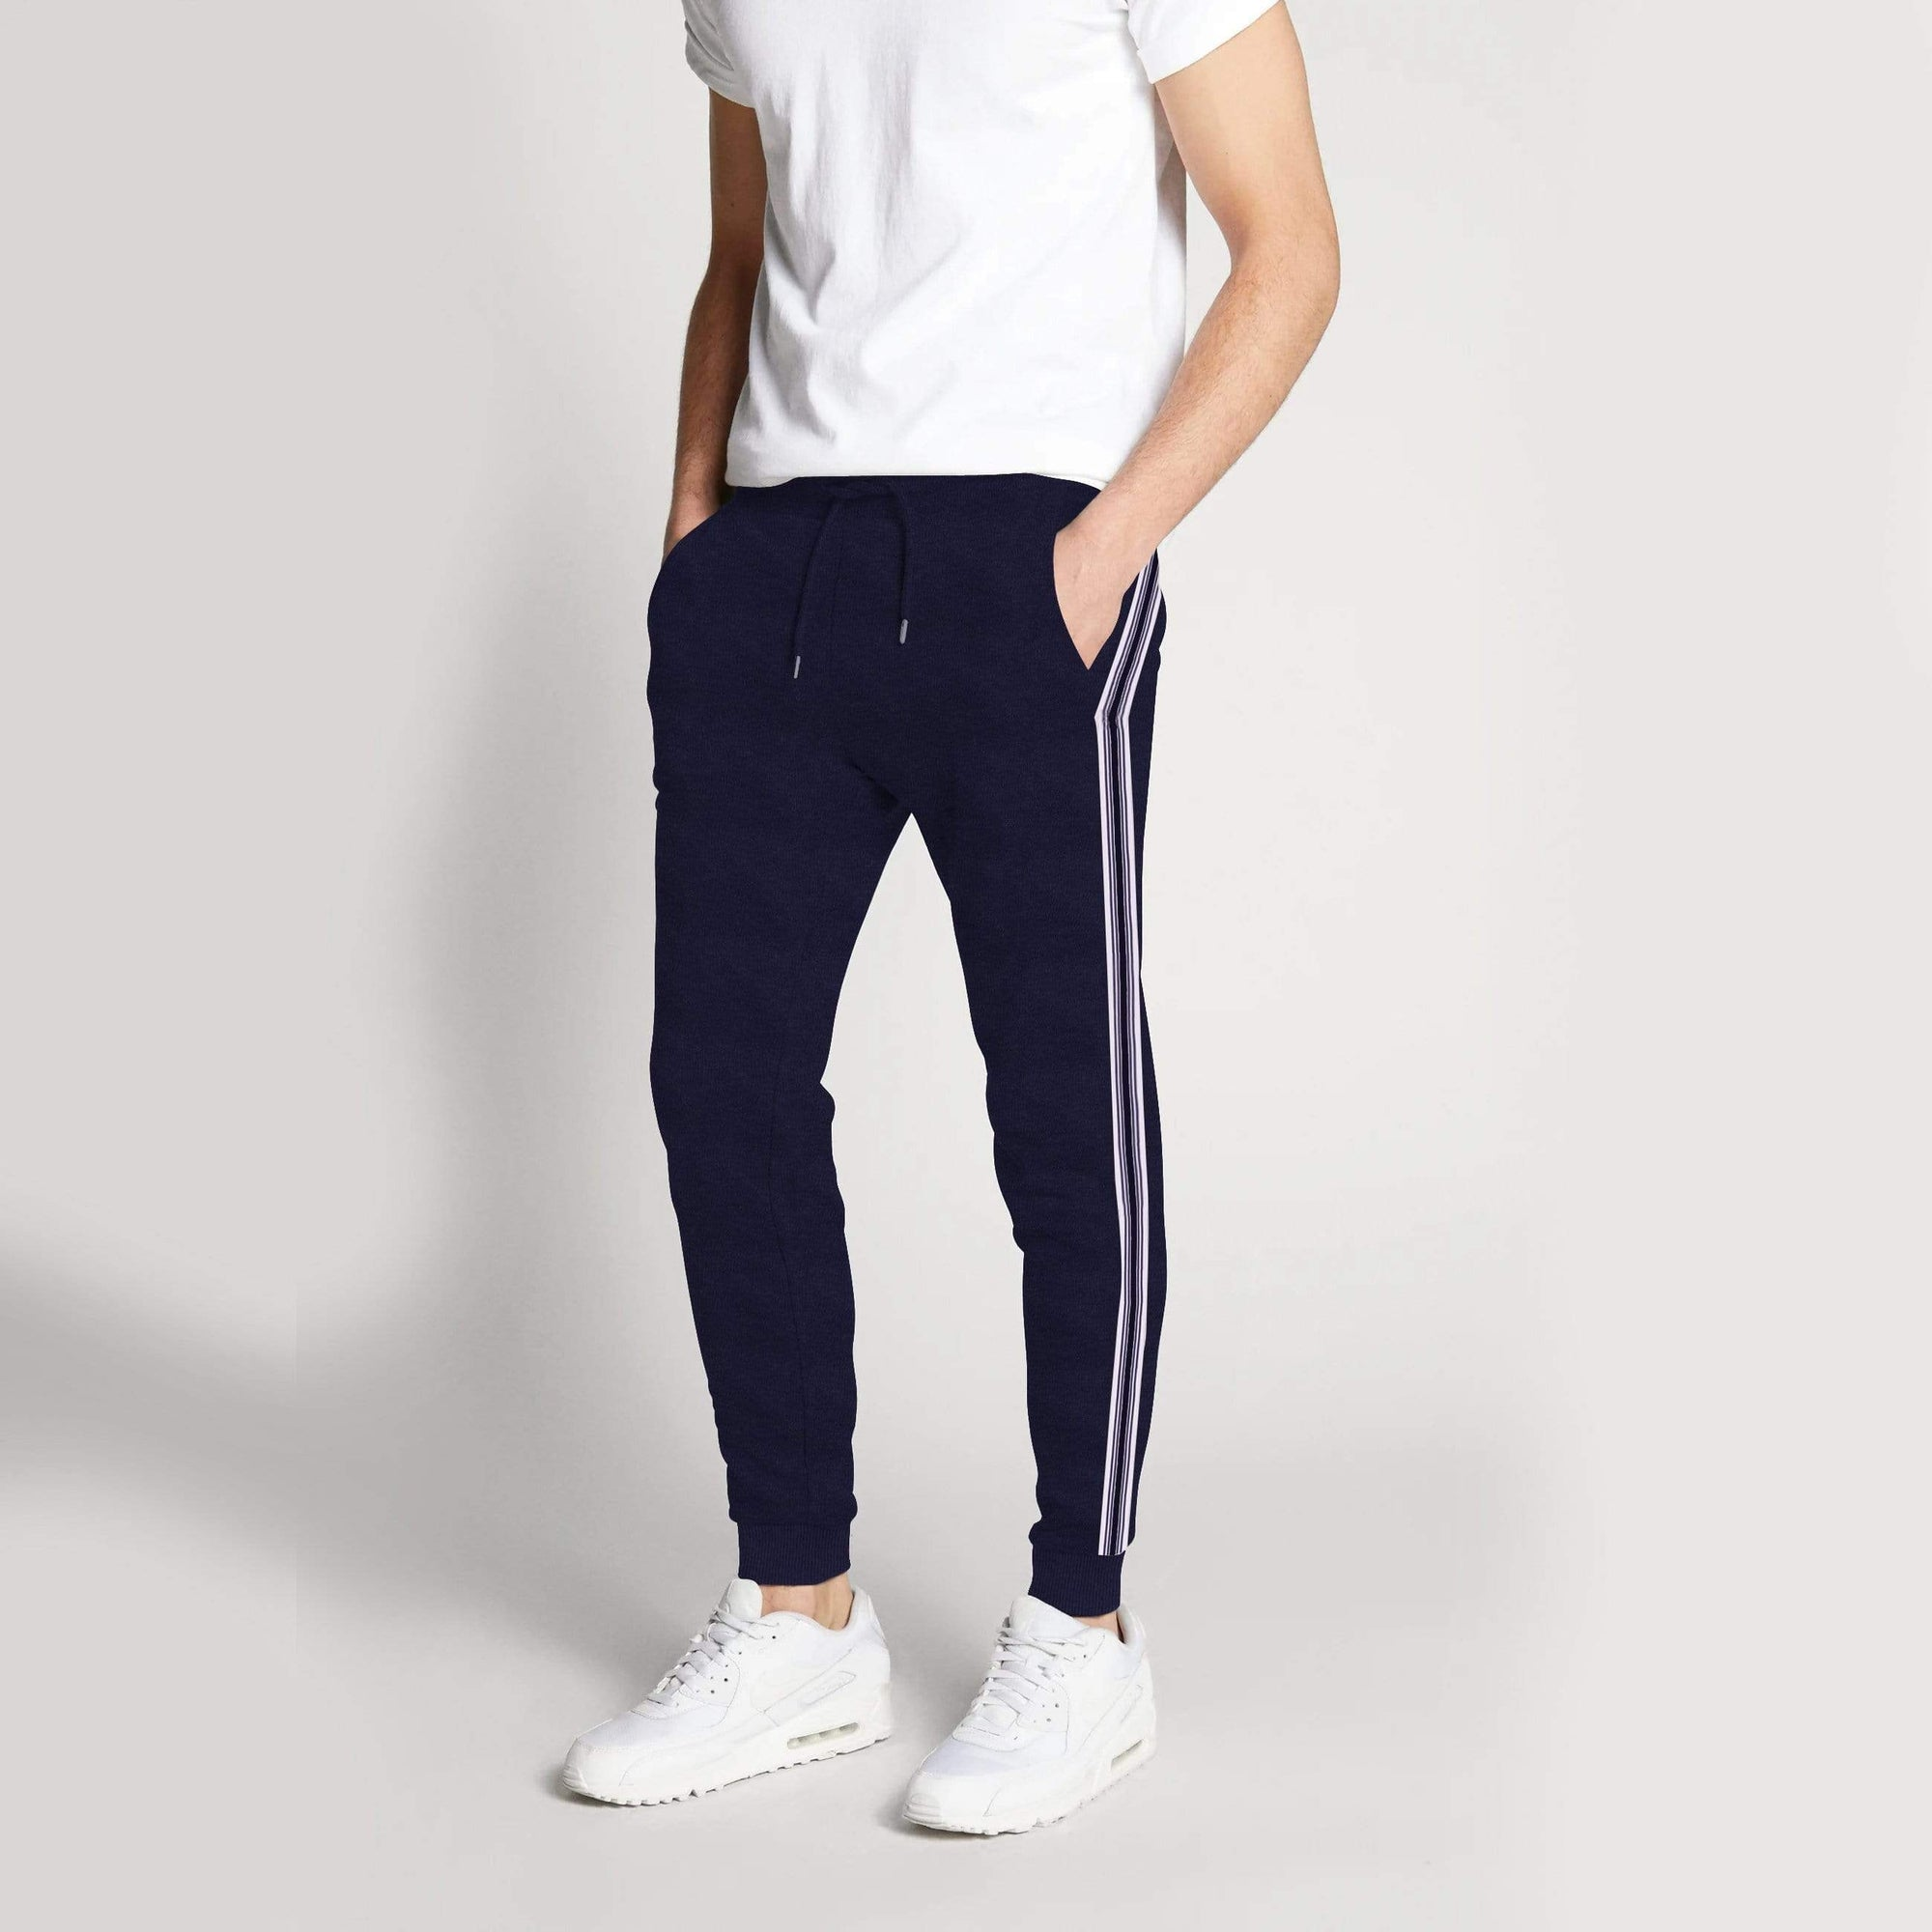 Henry James Men's Sweat Pants Navy / S Men's Henry James Side Stripes Sweat Pants